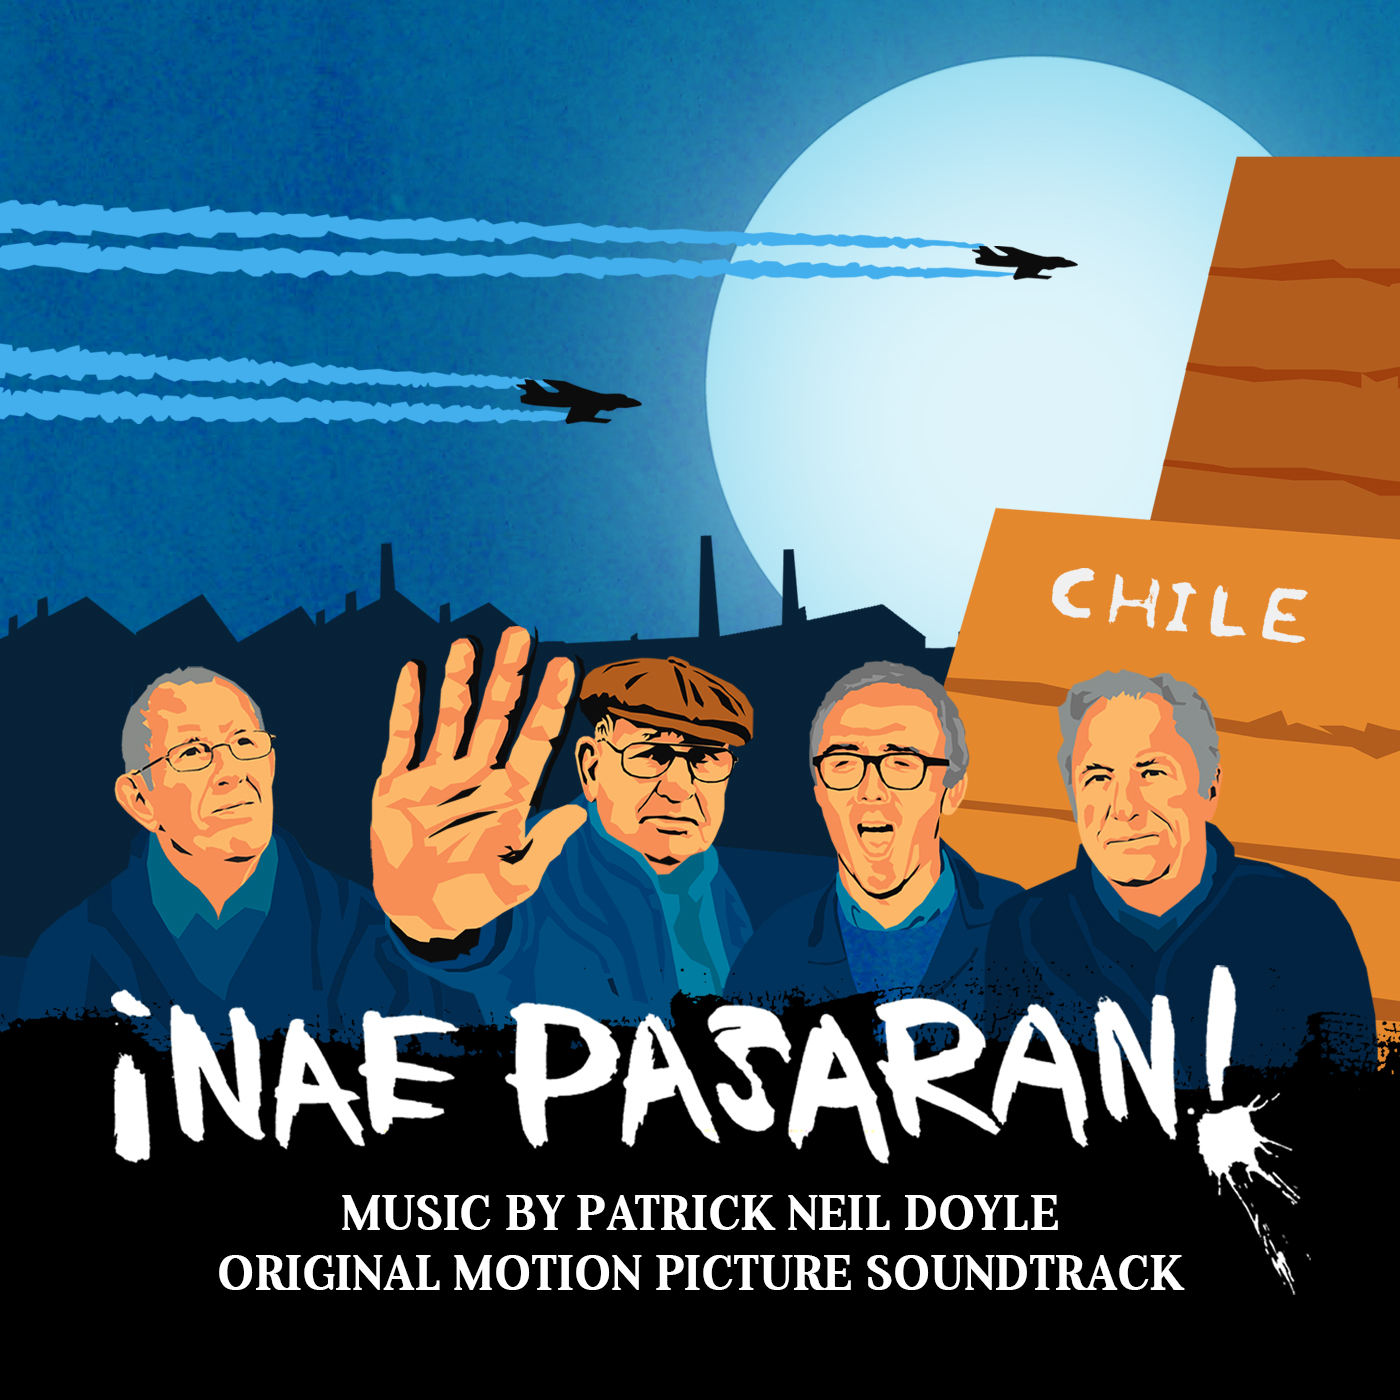 27 August 2018 – Nae Pasaran soundtrack now available!